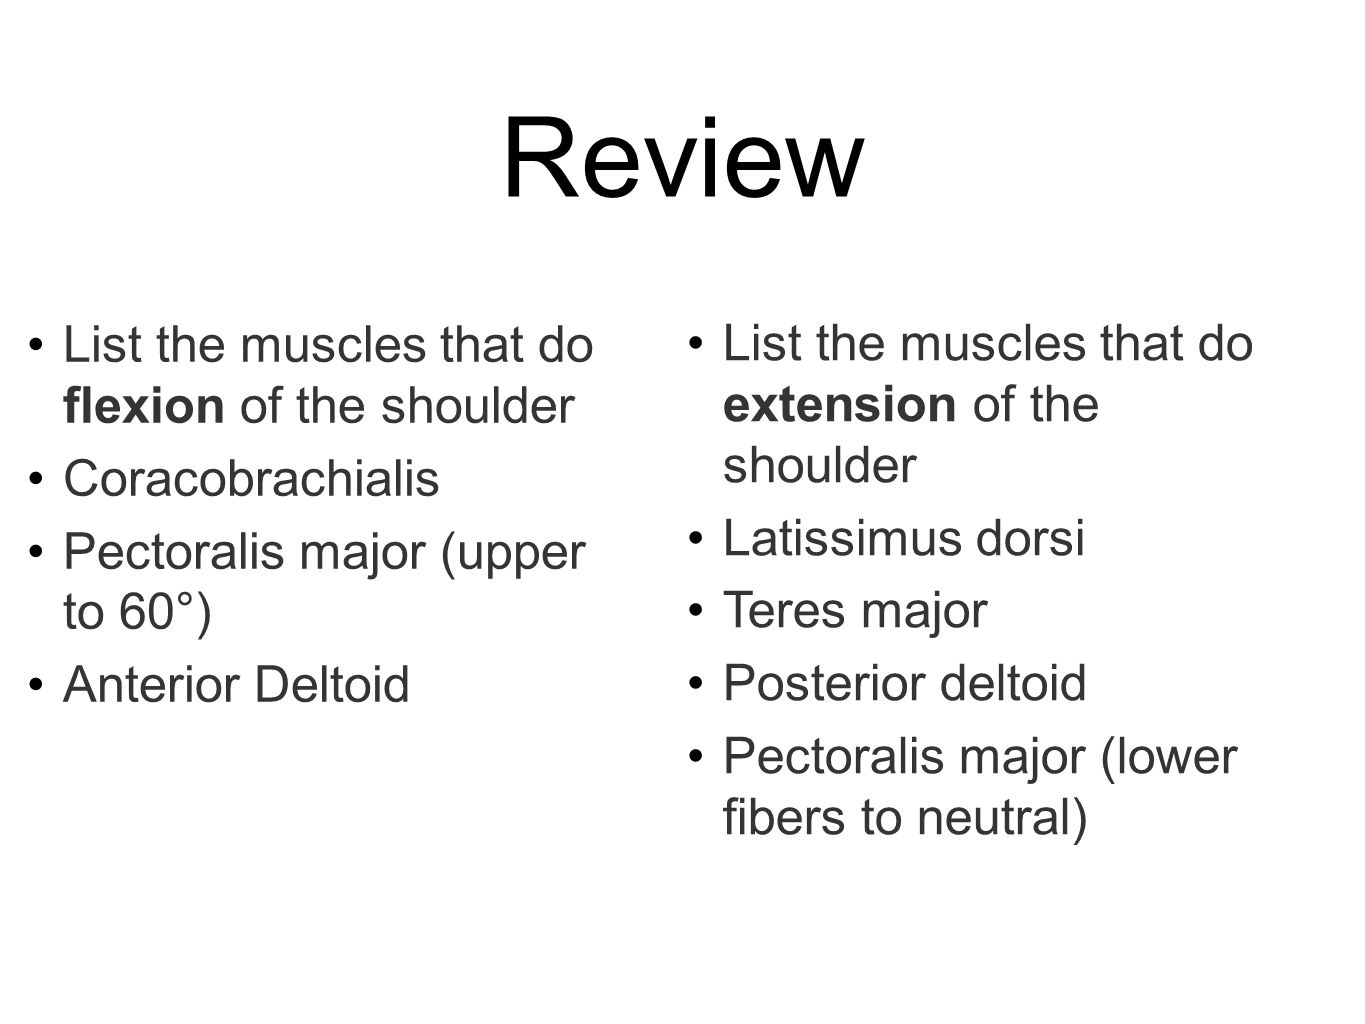 Review List the muscles that do flexion of the shoulder